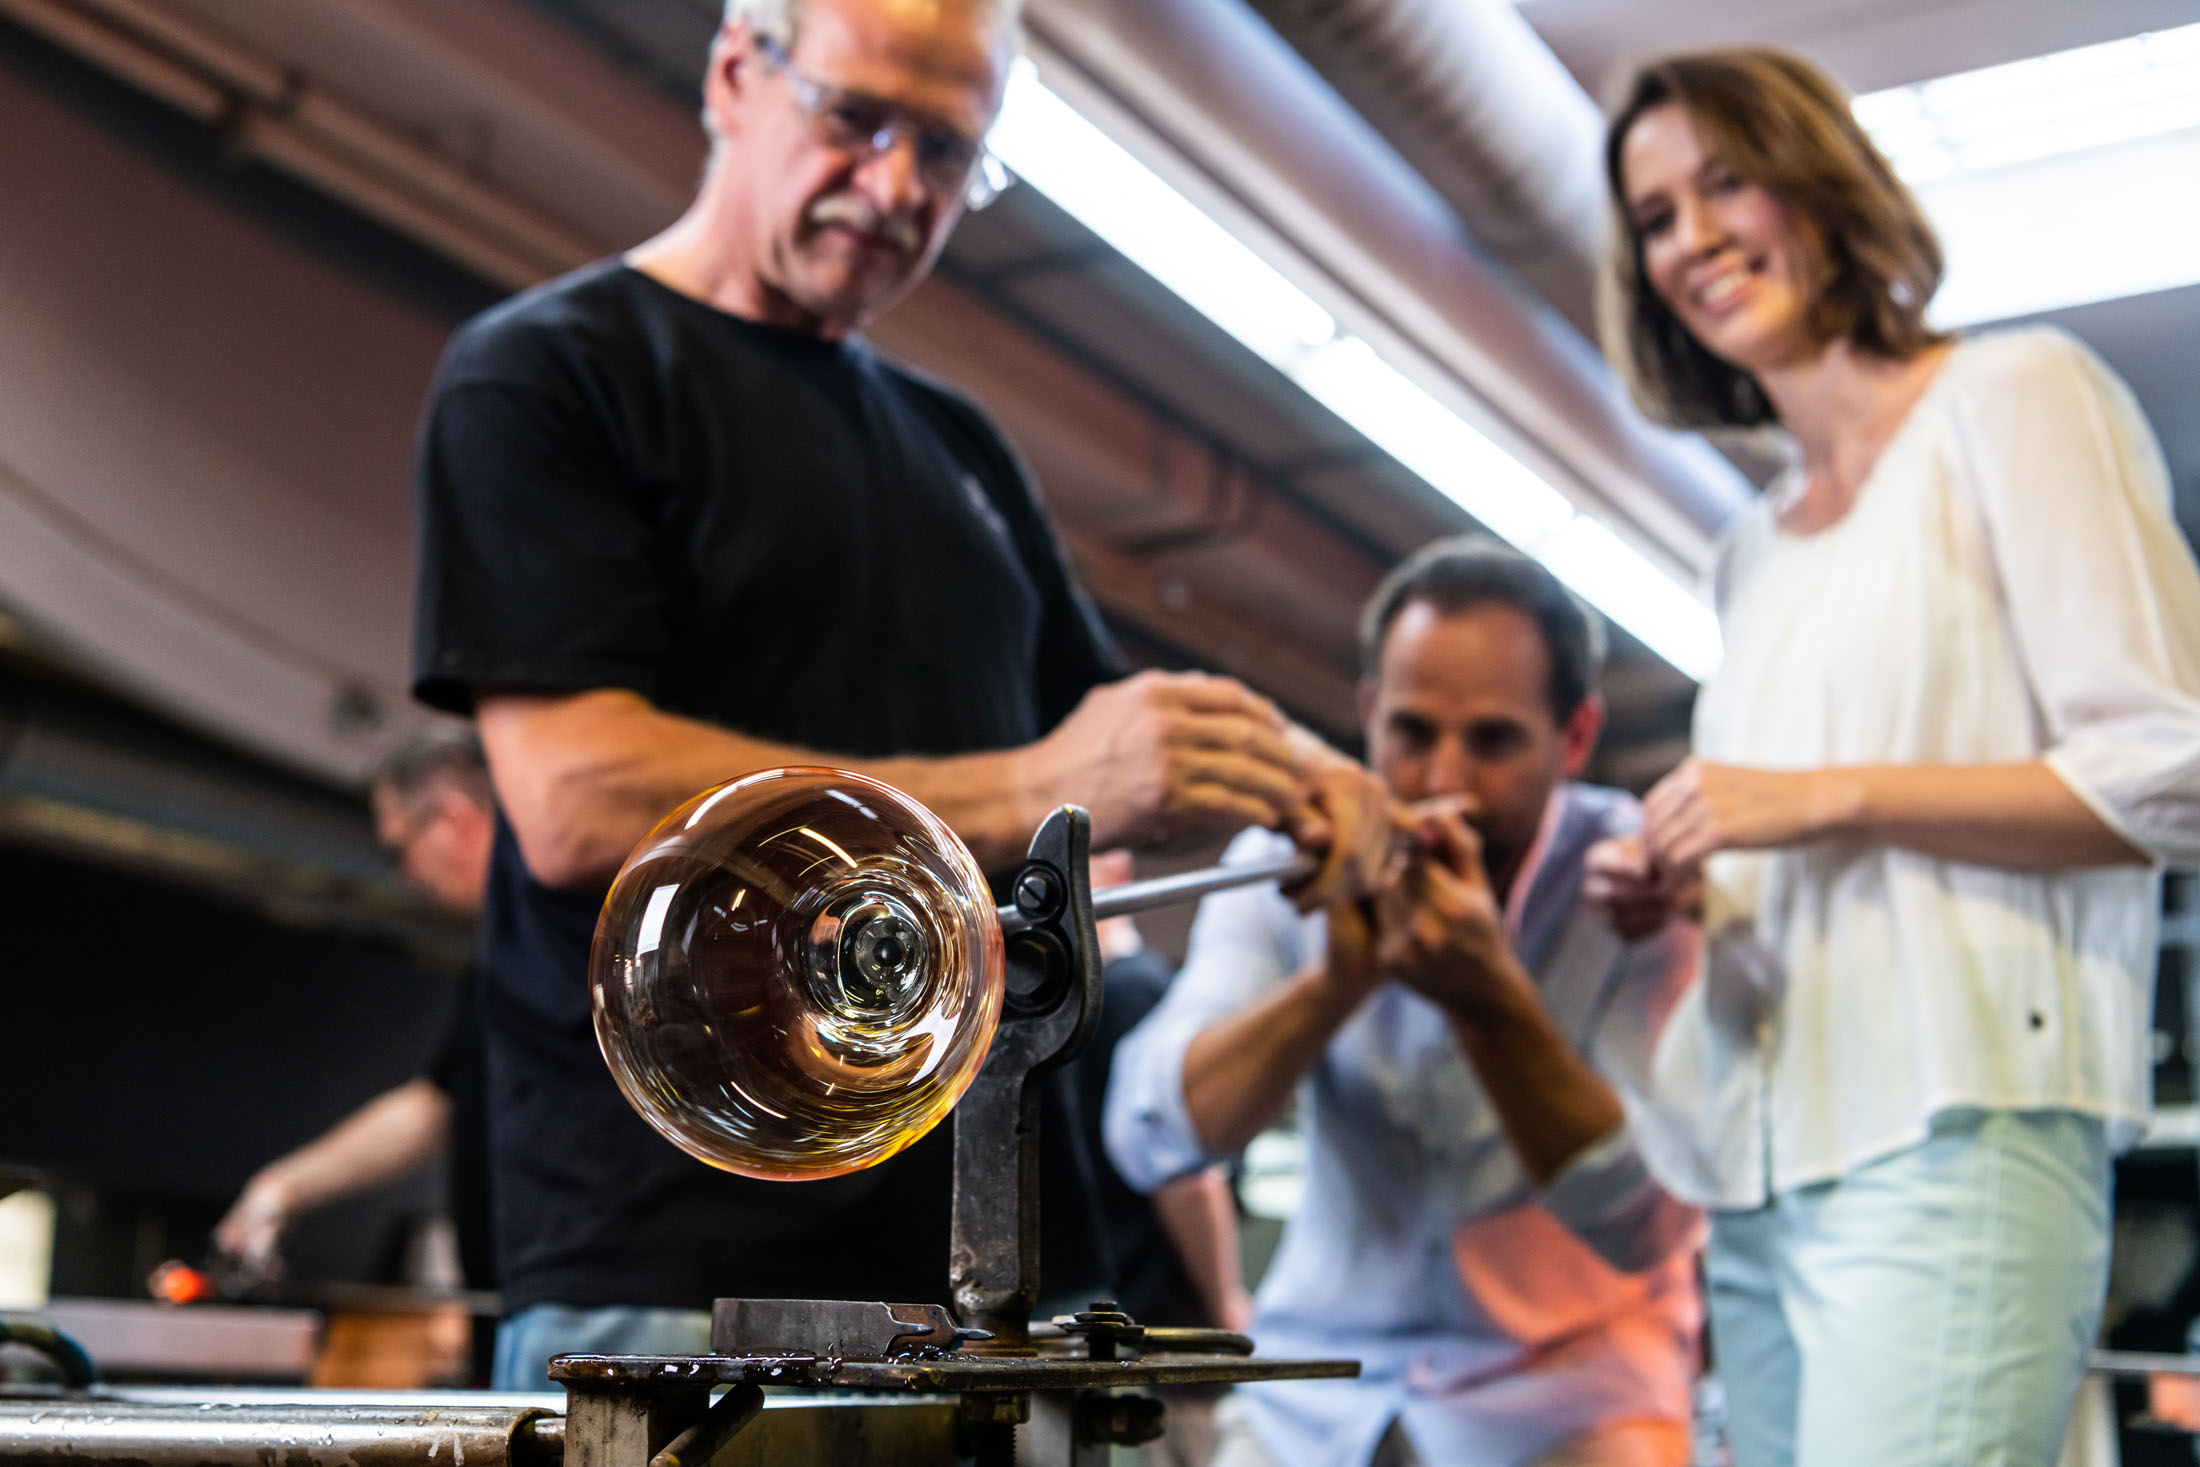 You can blow a glass ball for yourself - Selbst glasblasen